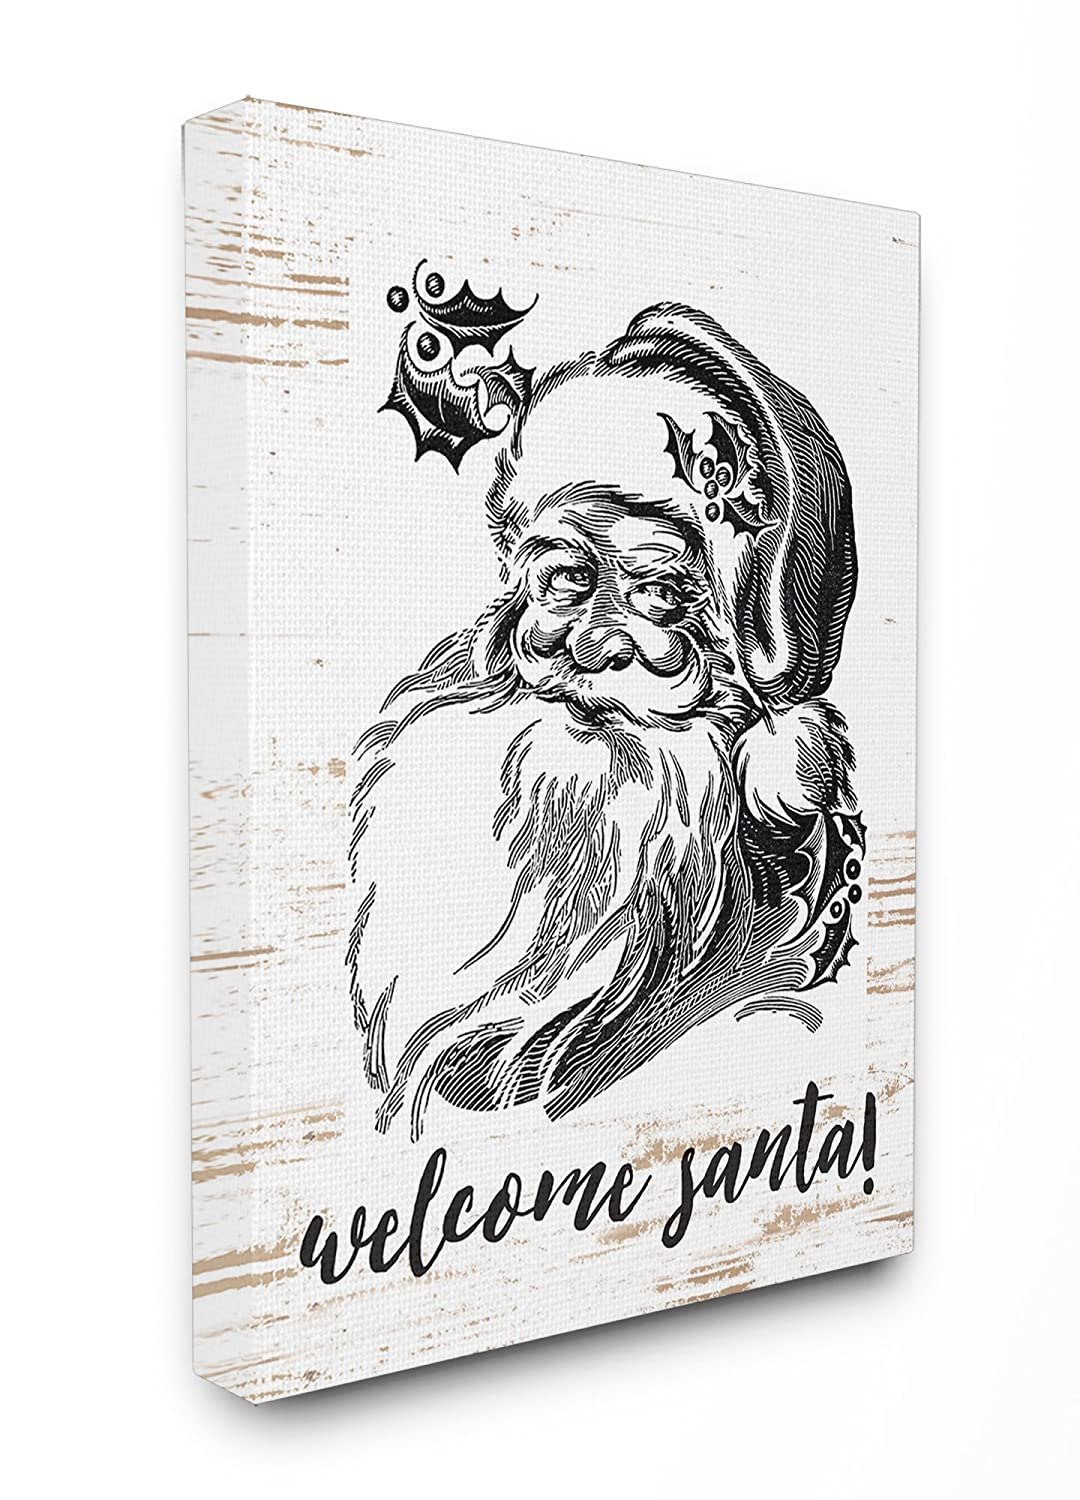 Multi-Color Stupell Industries Joyous Noel Christmas Wall Plaque 13 x 19